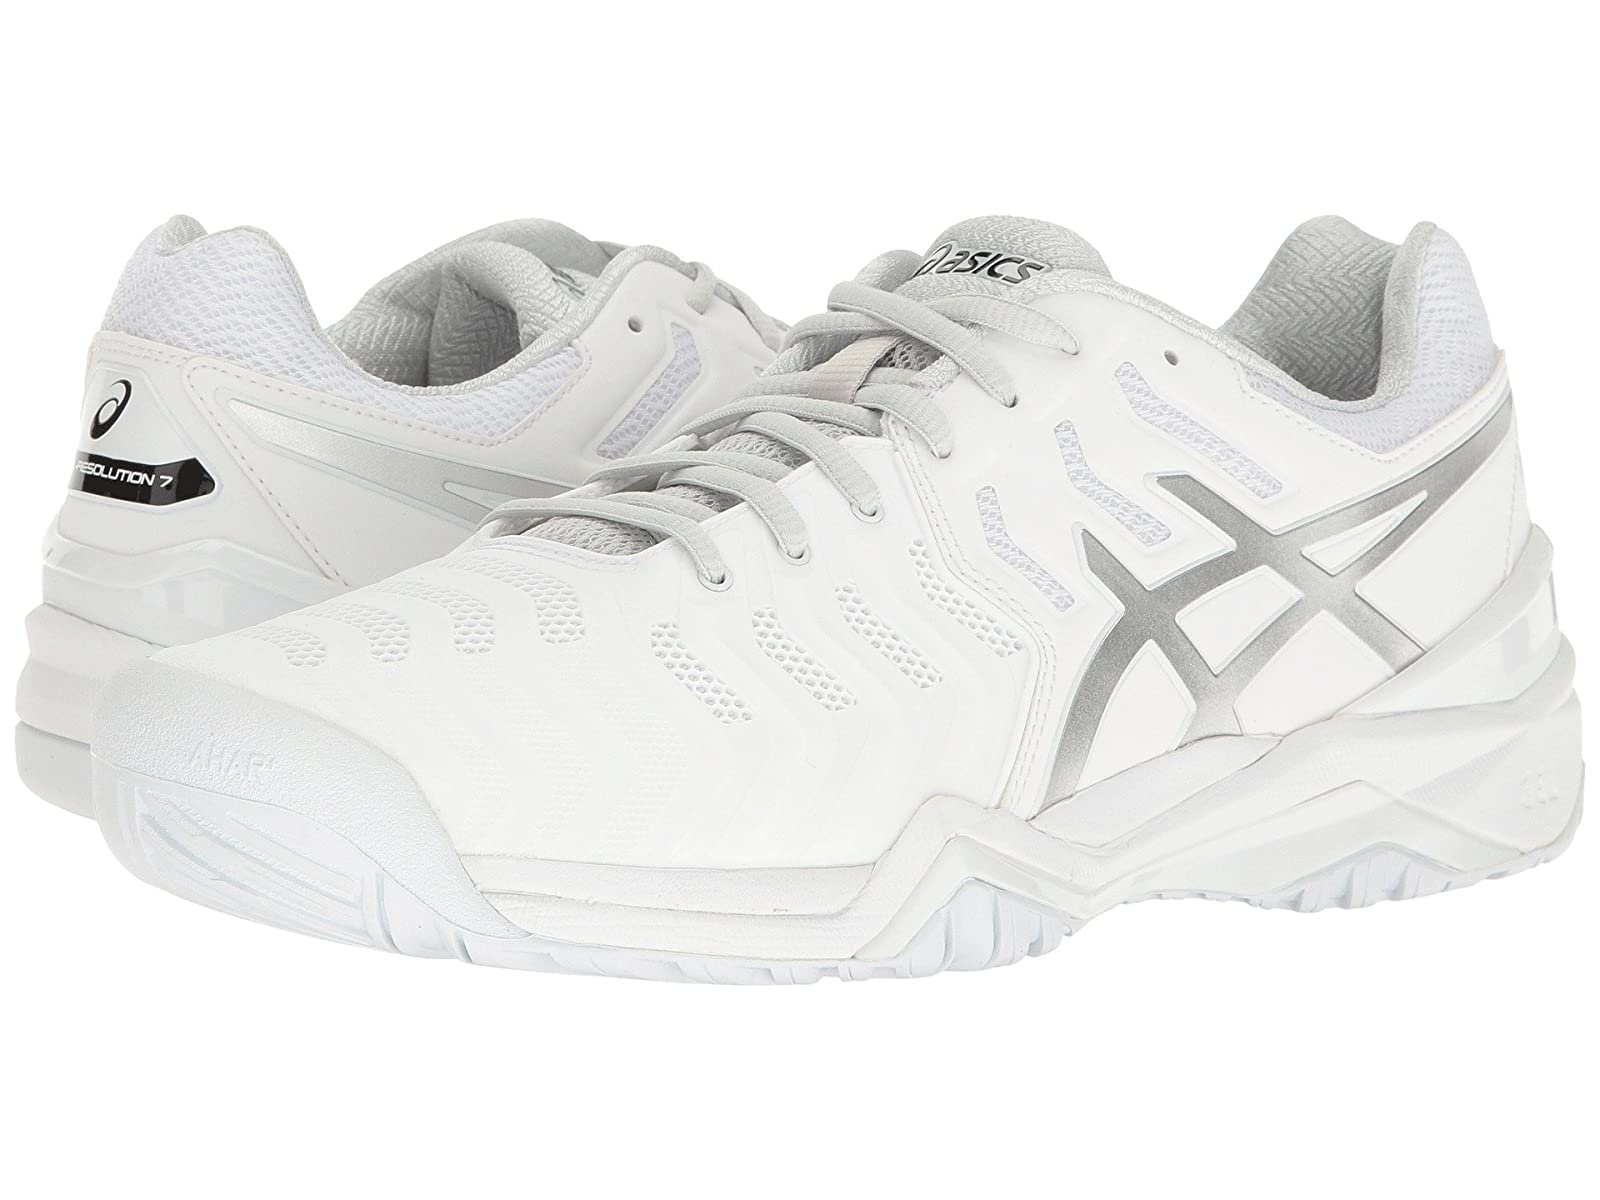 ASICS Gel-Resolution 7Atmospheric grades have affordable shoes